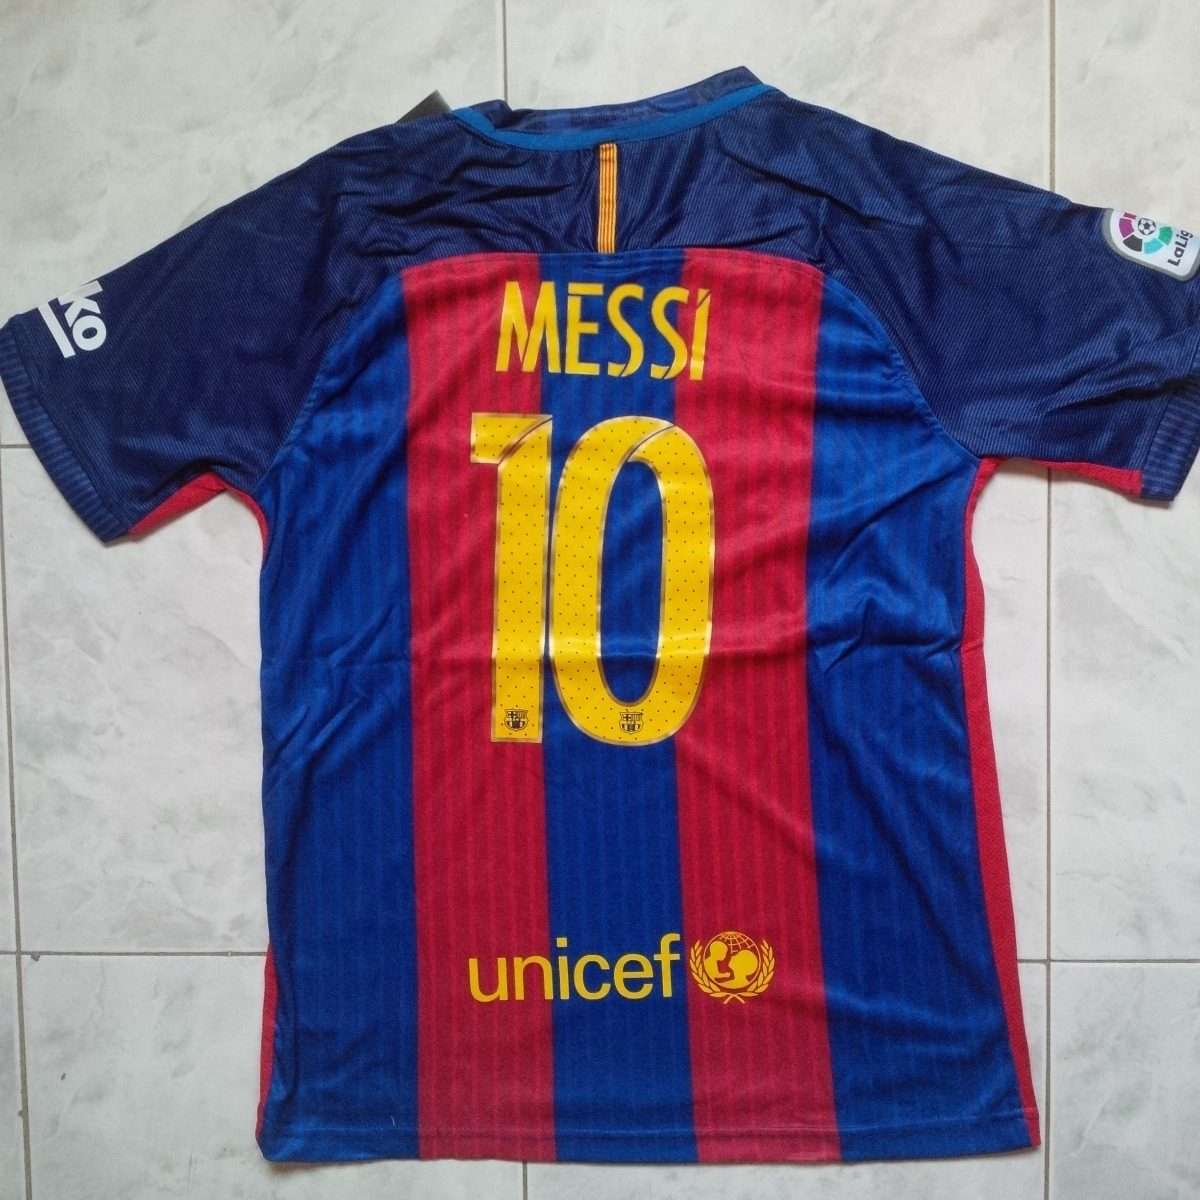 camiseta franela barcelona fc local 2016 estampada messi. Cargando zoom. 8a362f071ef